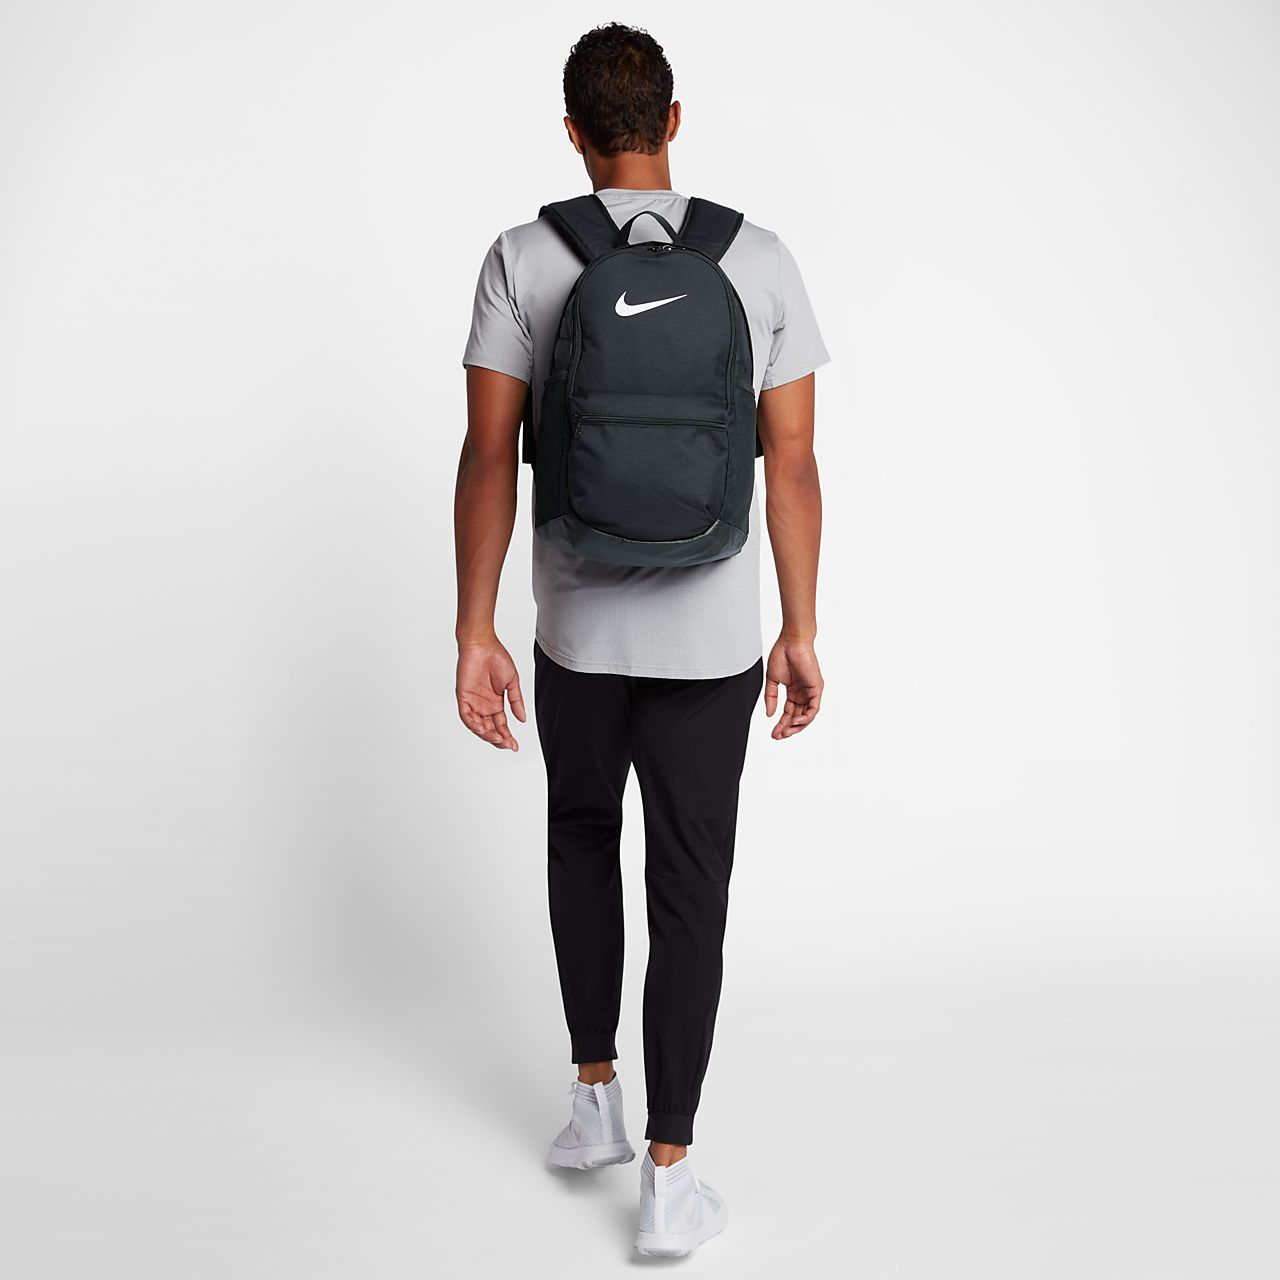 b807c6c260f8 Nike Brasilia (Medium) Training Backpack. Nike.com